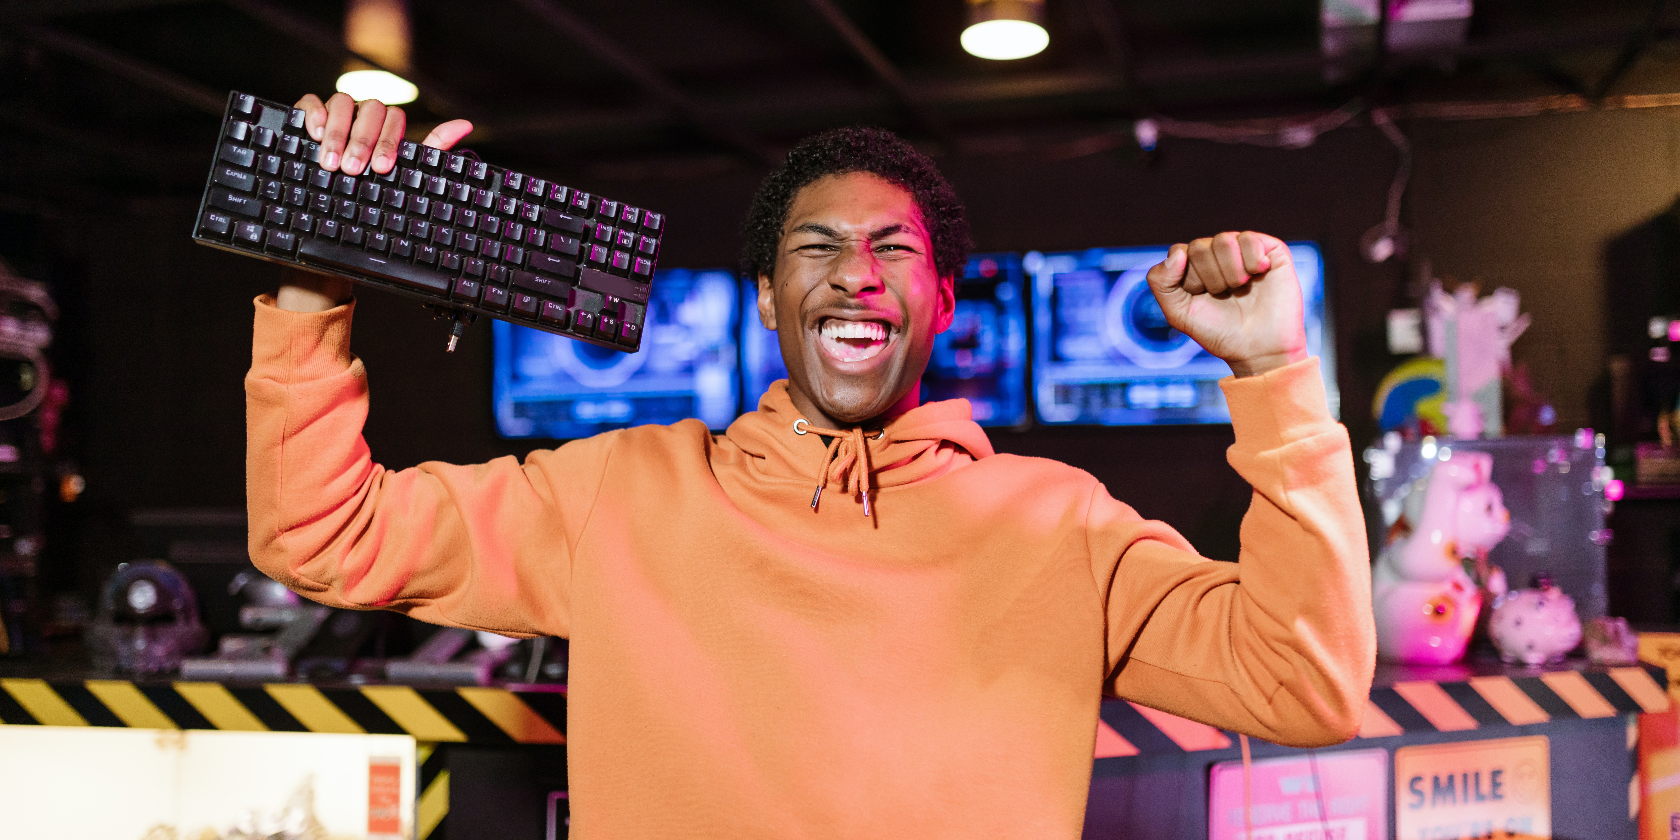 The 7 Best Budget-Friendly Gaming Keyboards